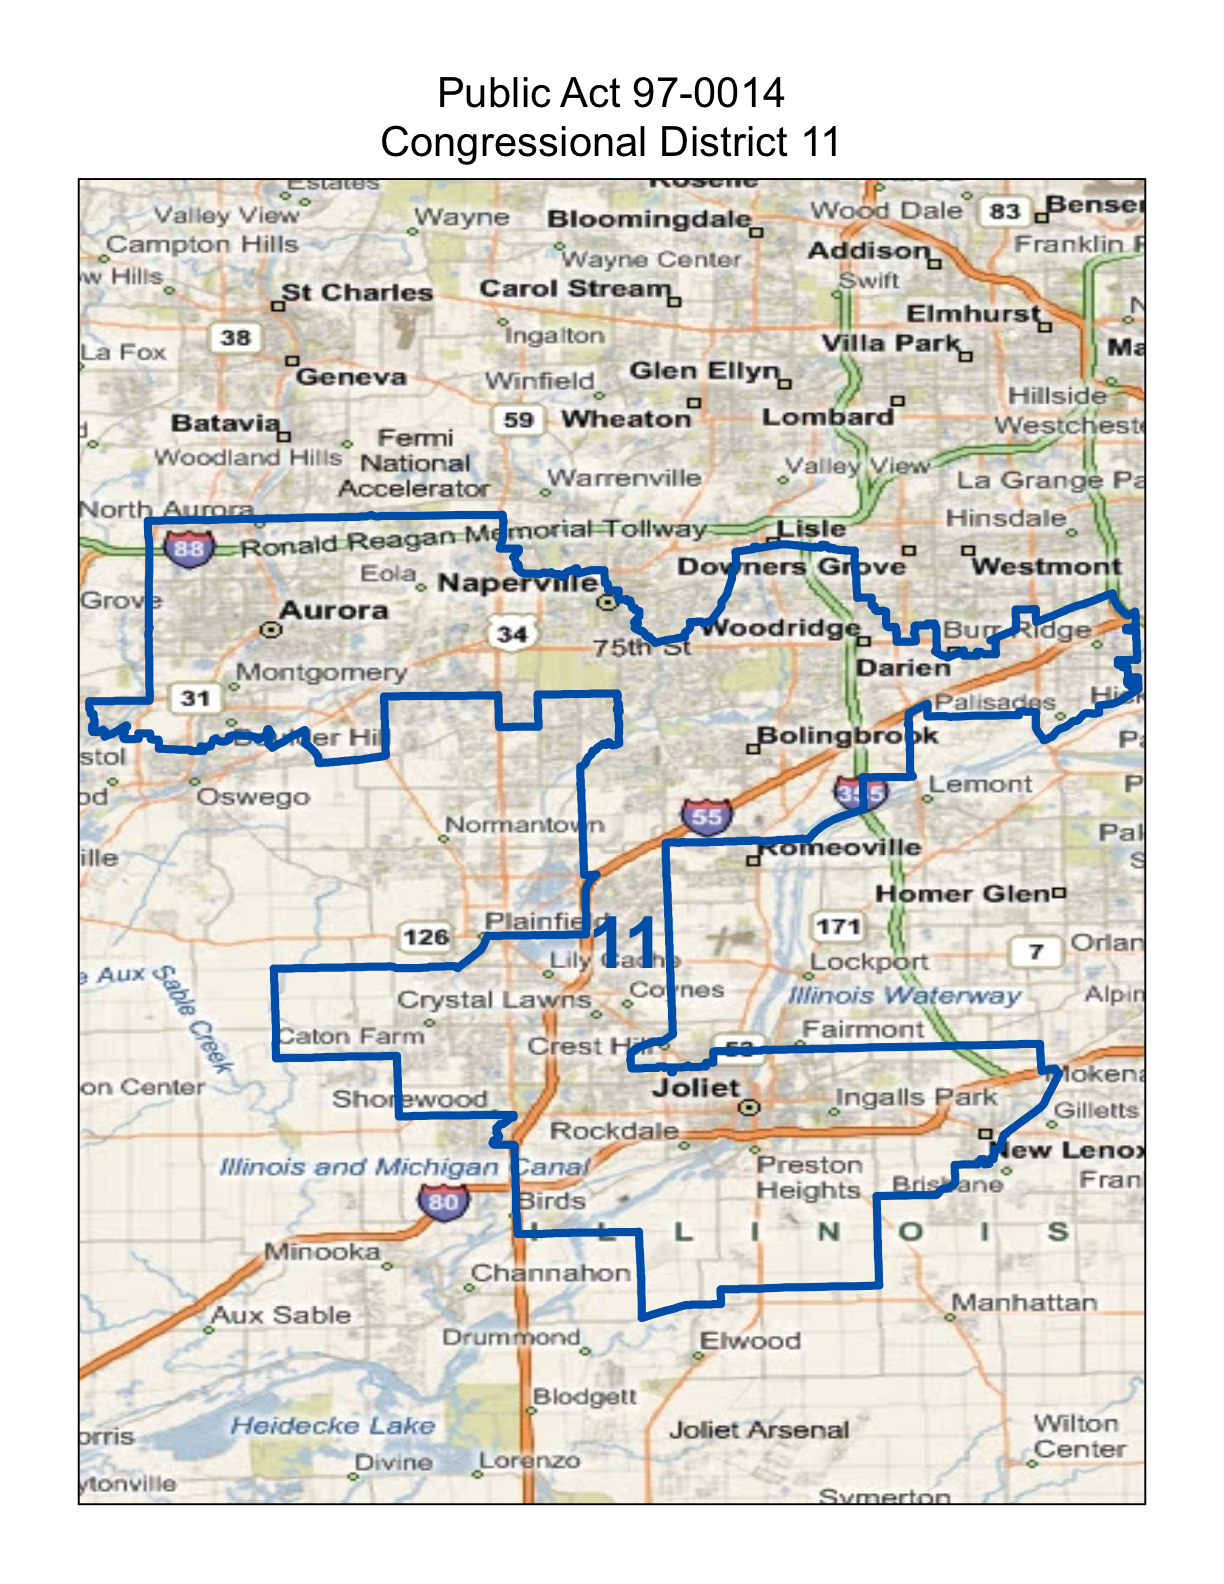 map of realigned illinois 11th congressional district including the towns of joliet parts of new lenox bolingbrook naperville woodridge and aurora